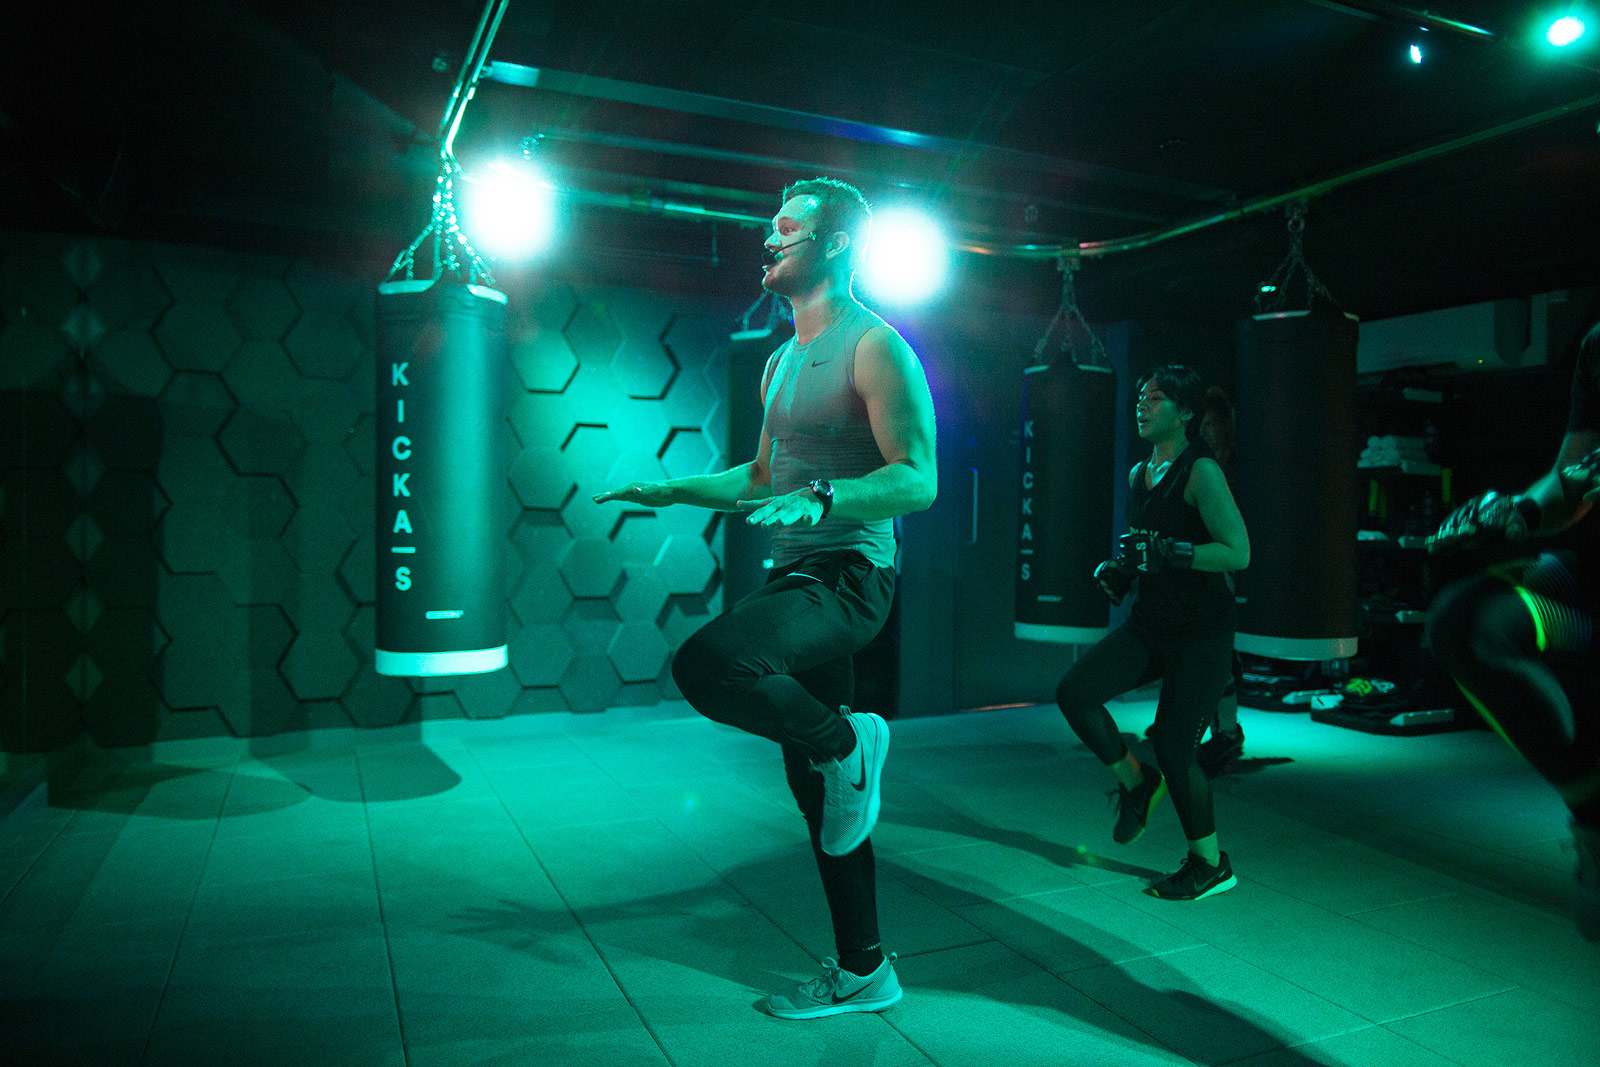 HIIT 45, Another_Space